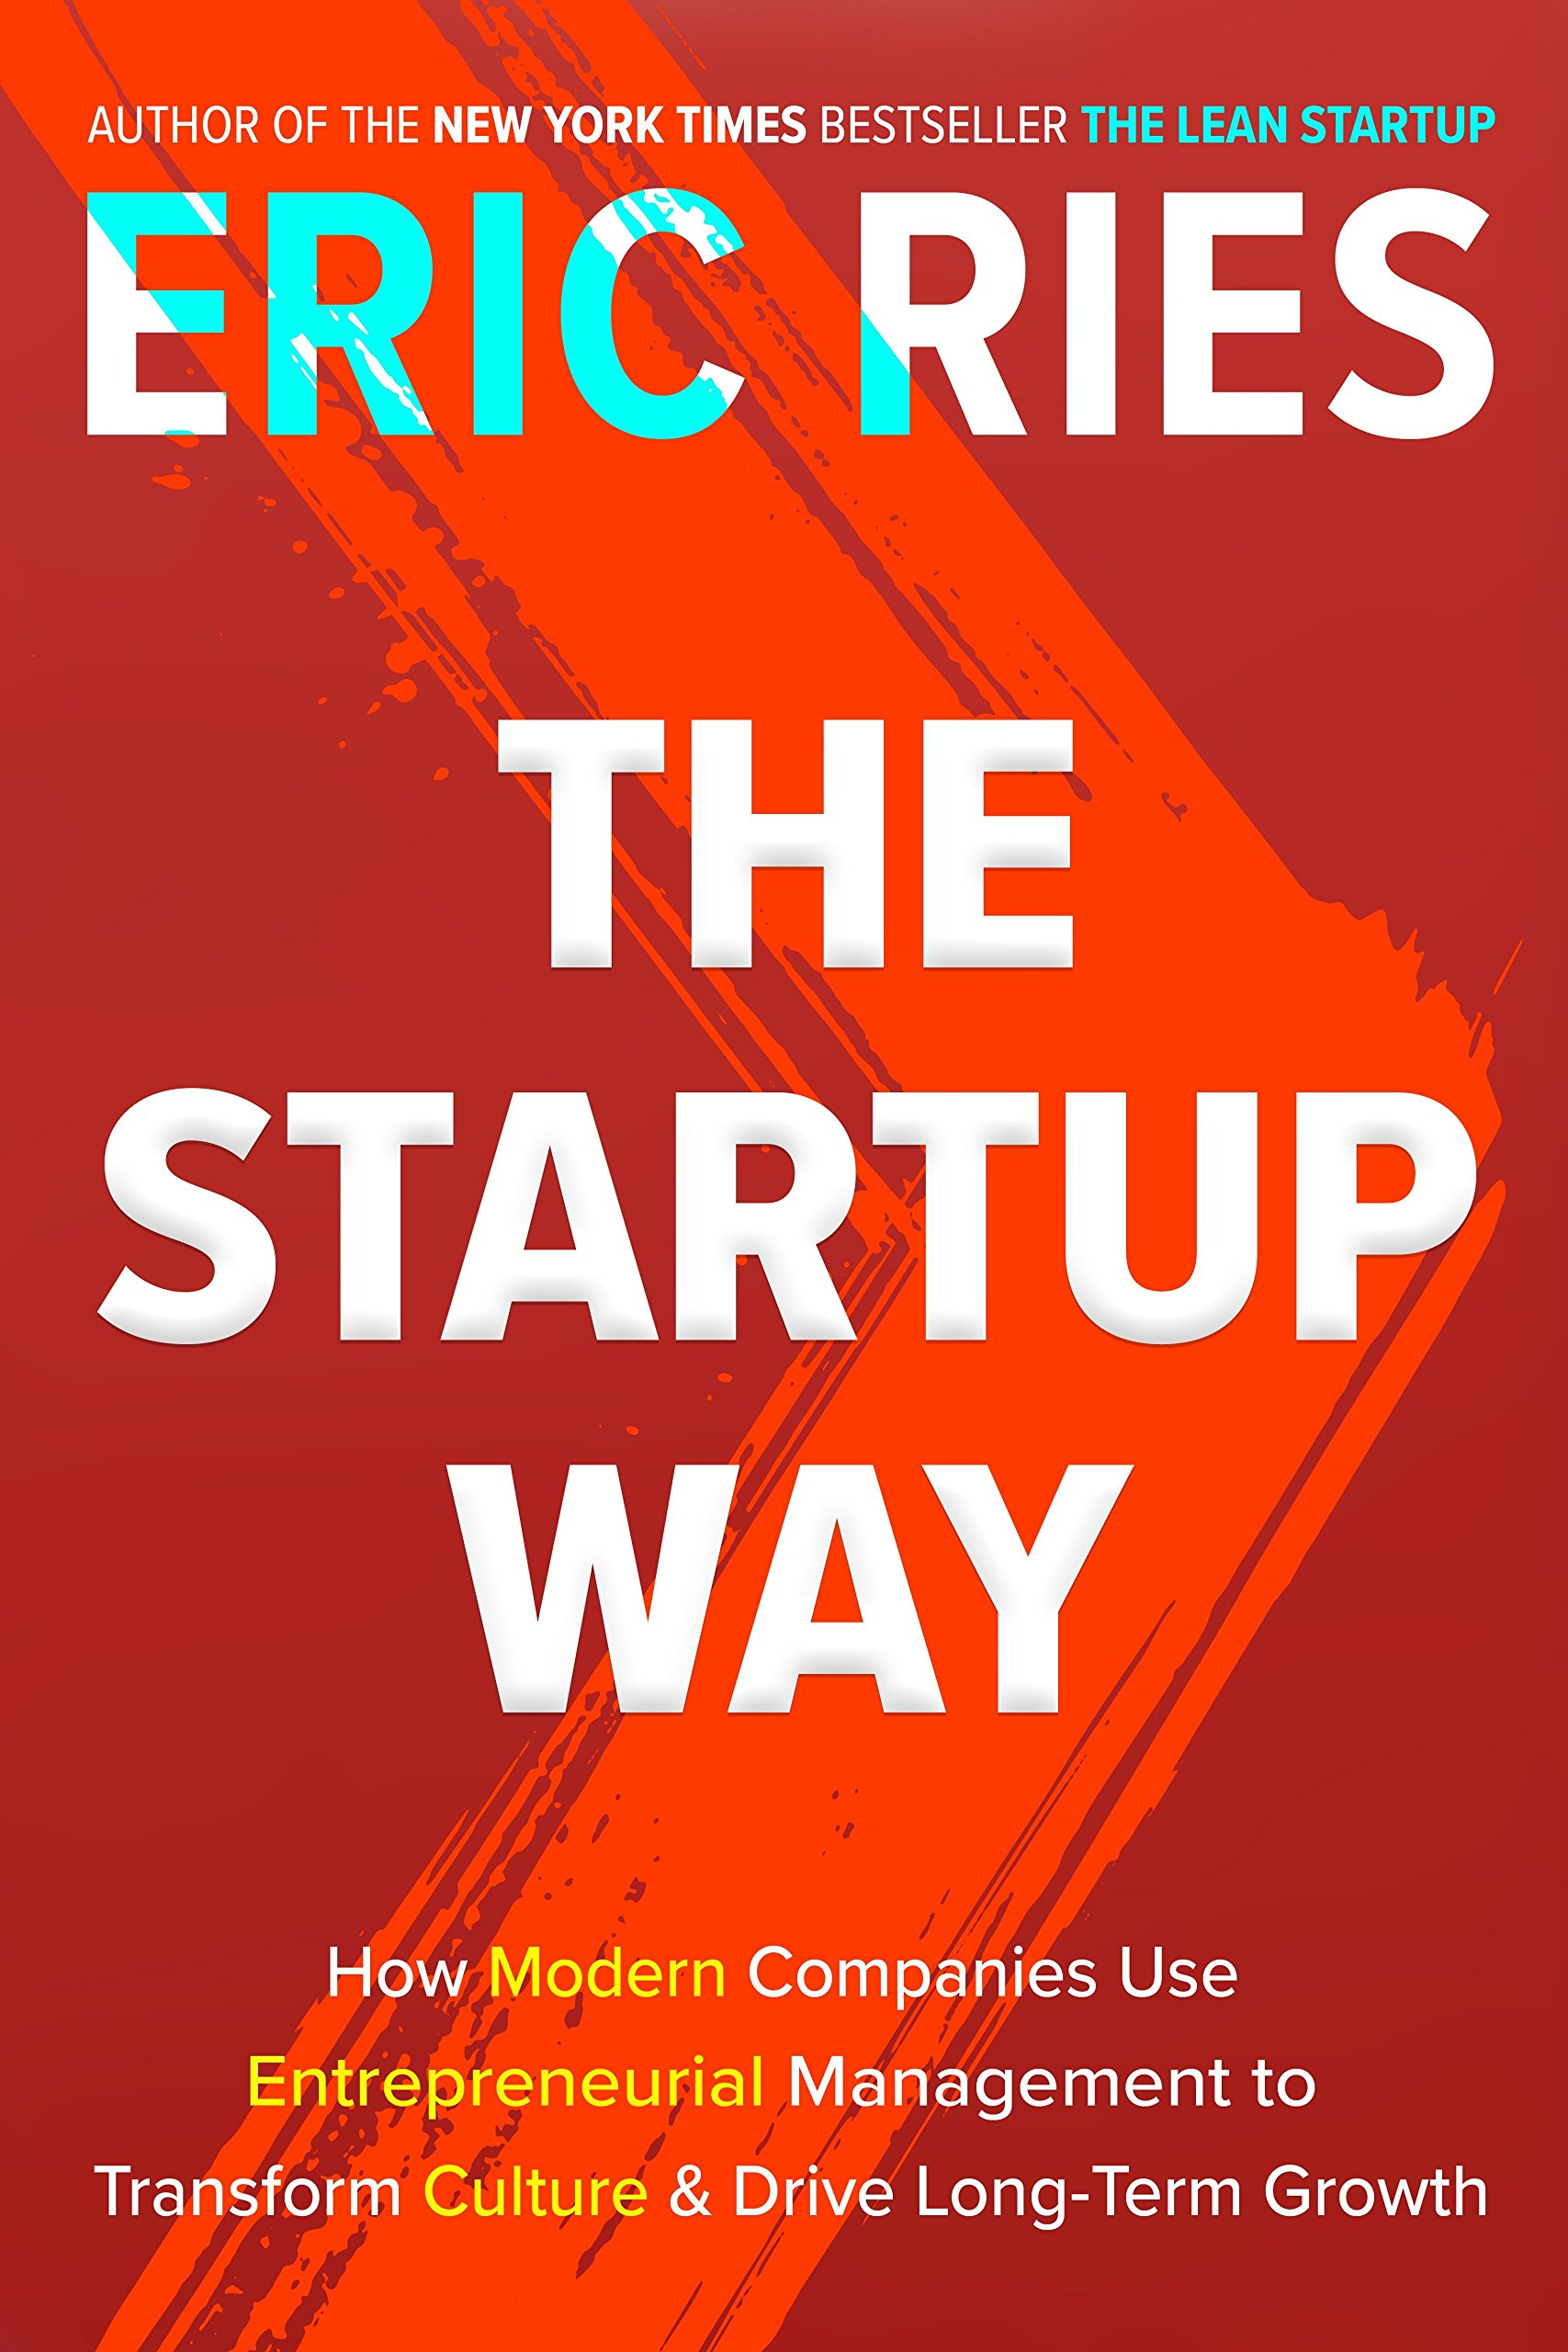 Eric-Ries-The-Startup-Way